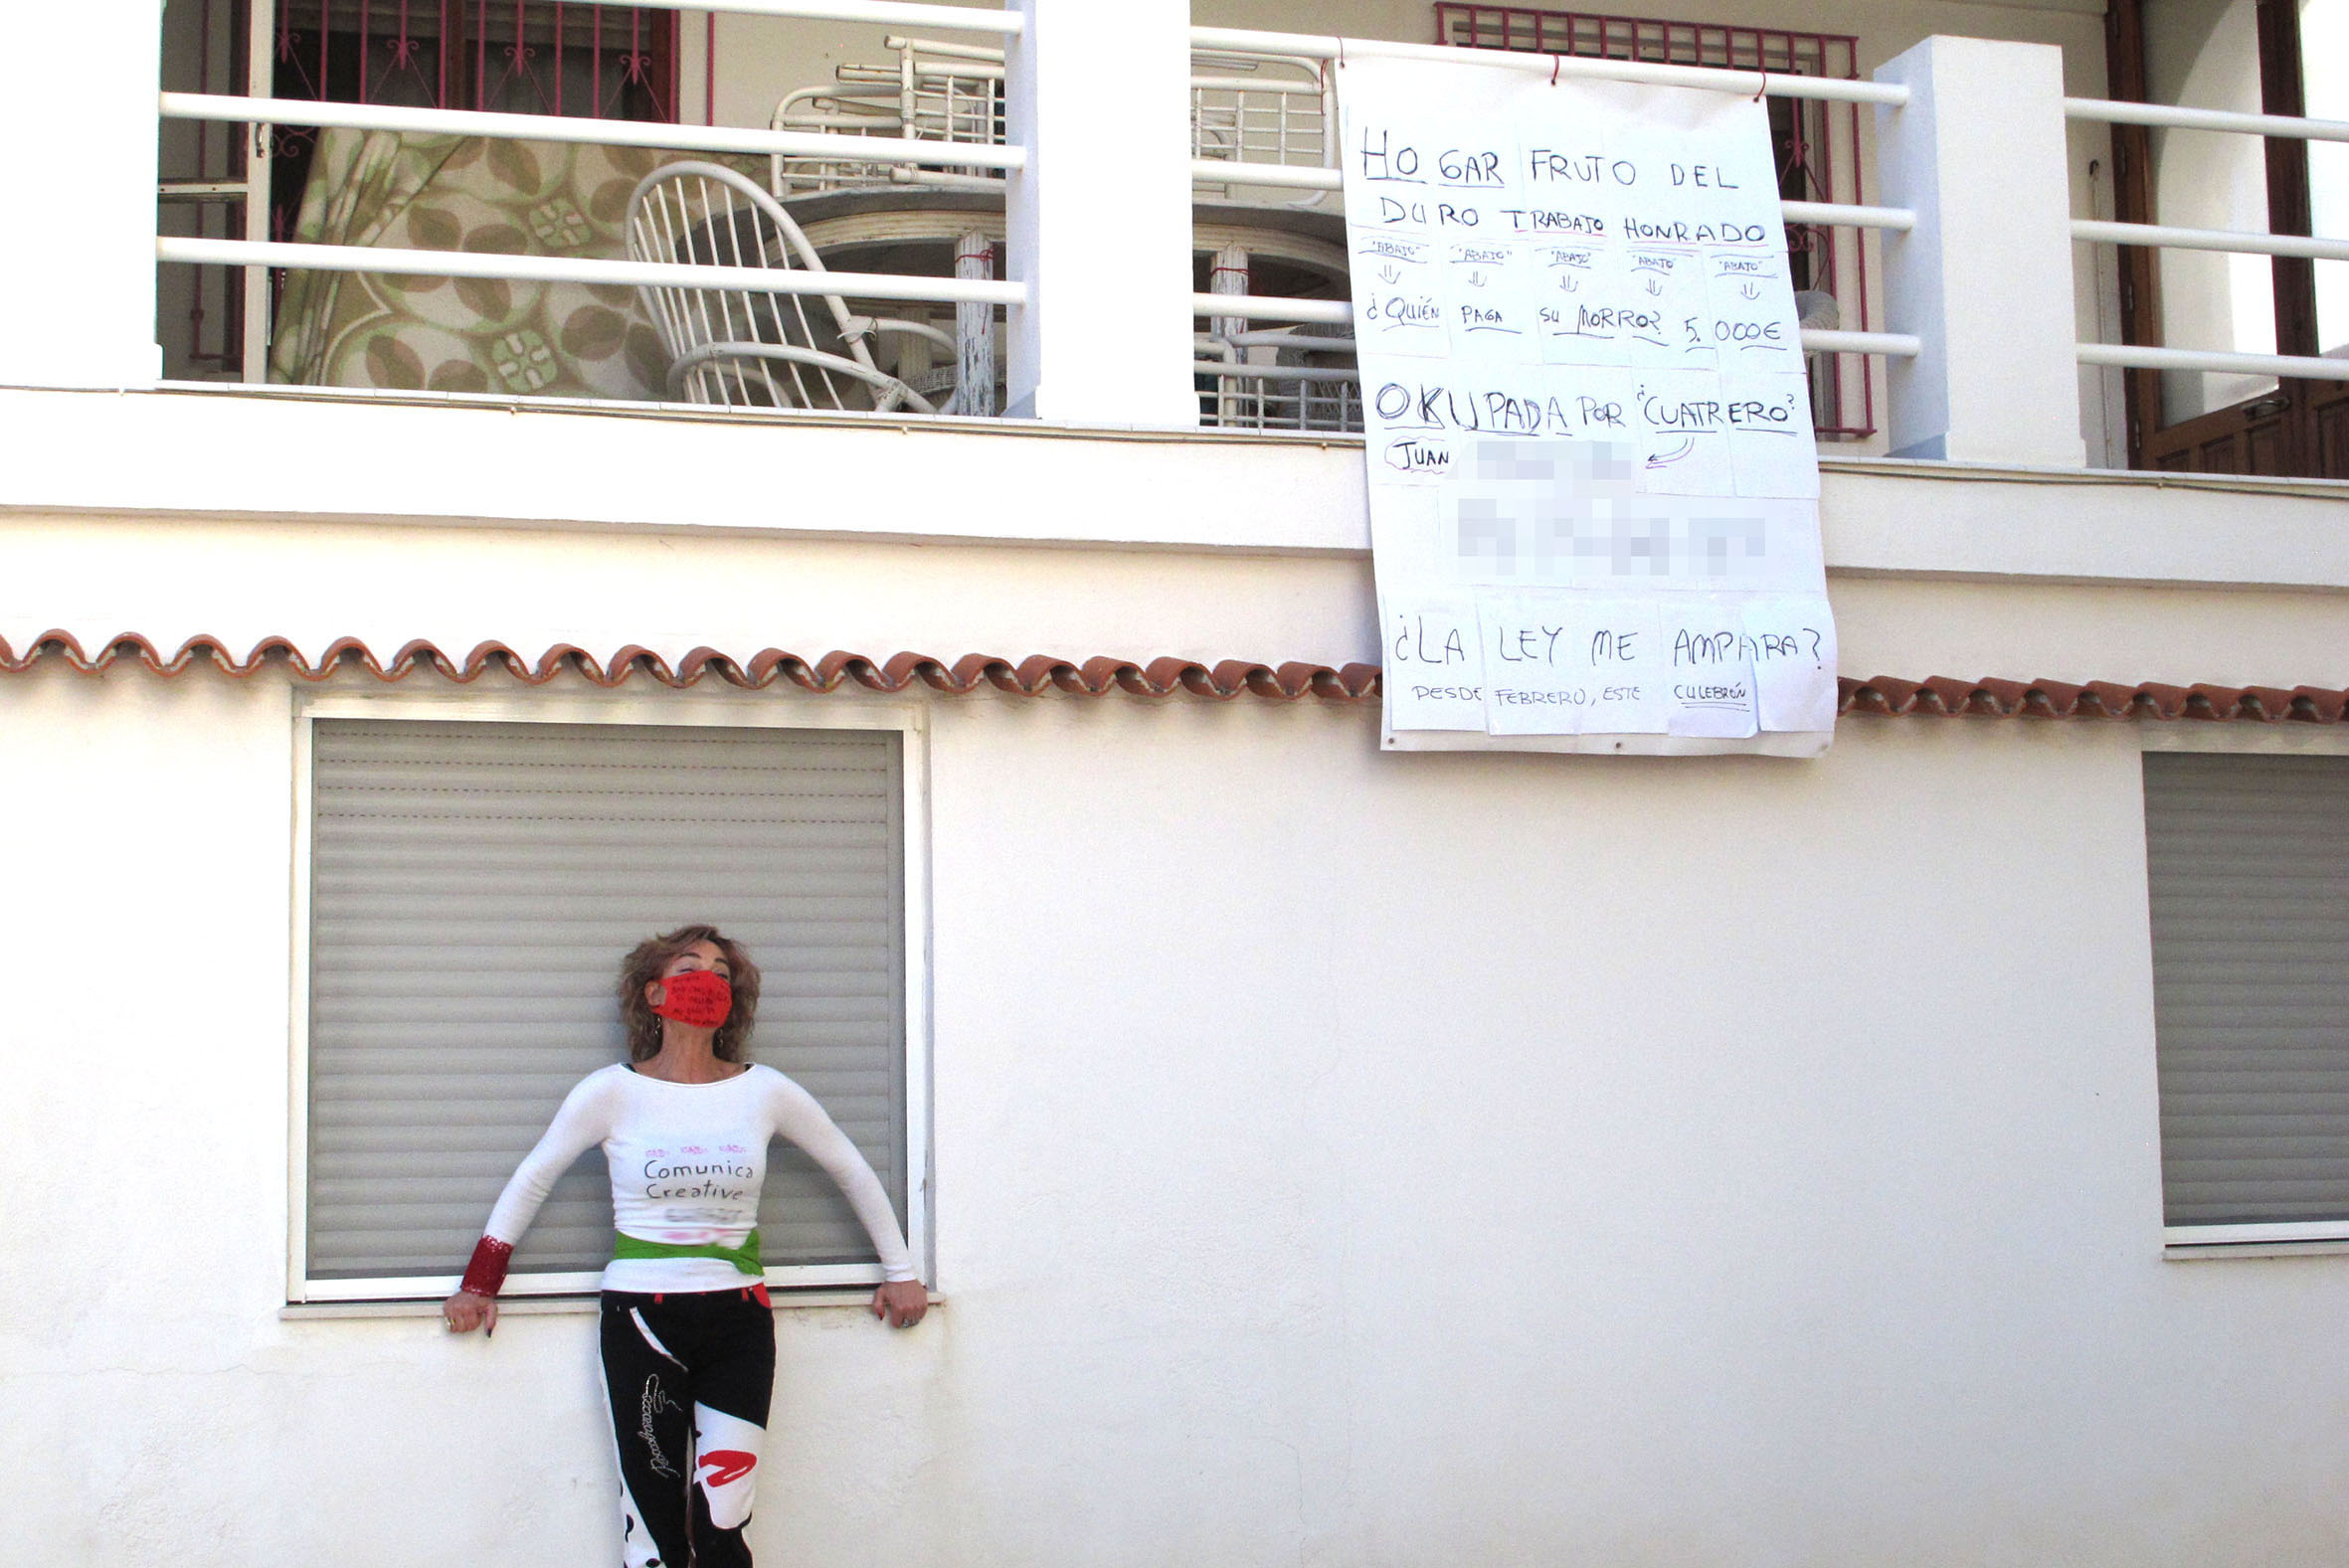 Lali Parra during the performance to expel the squatter